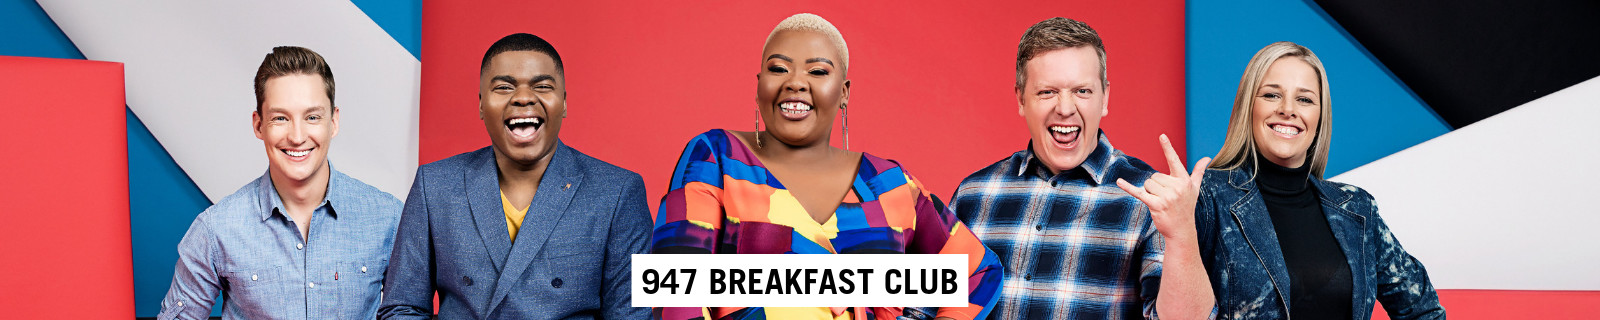 947-breakfast-club-banner-2019png